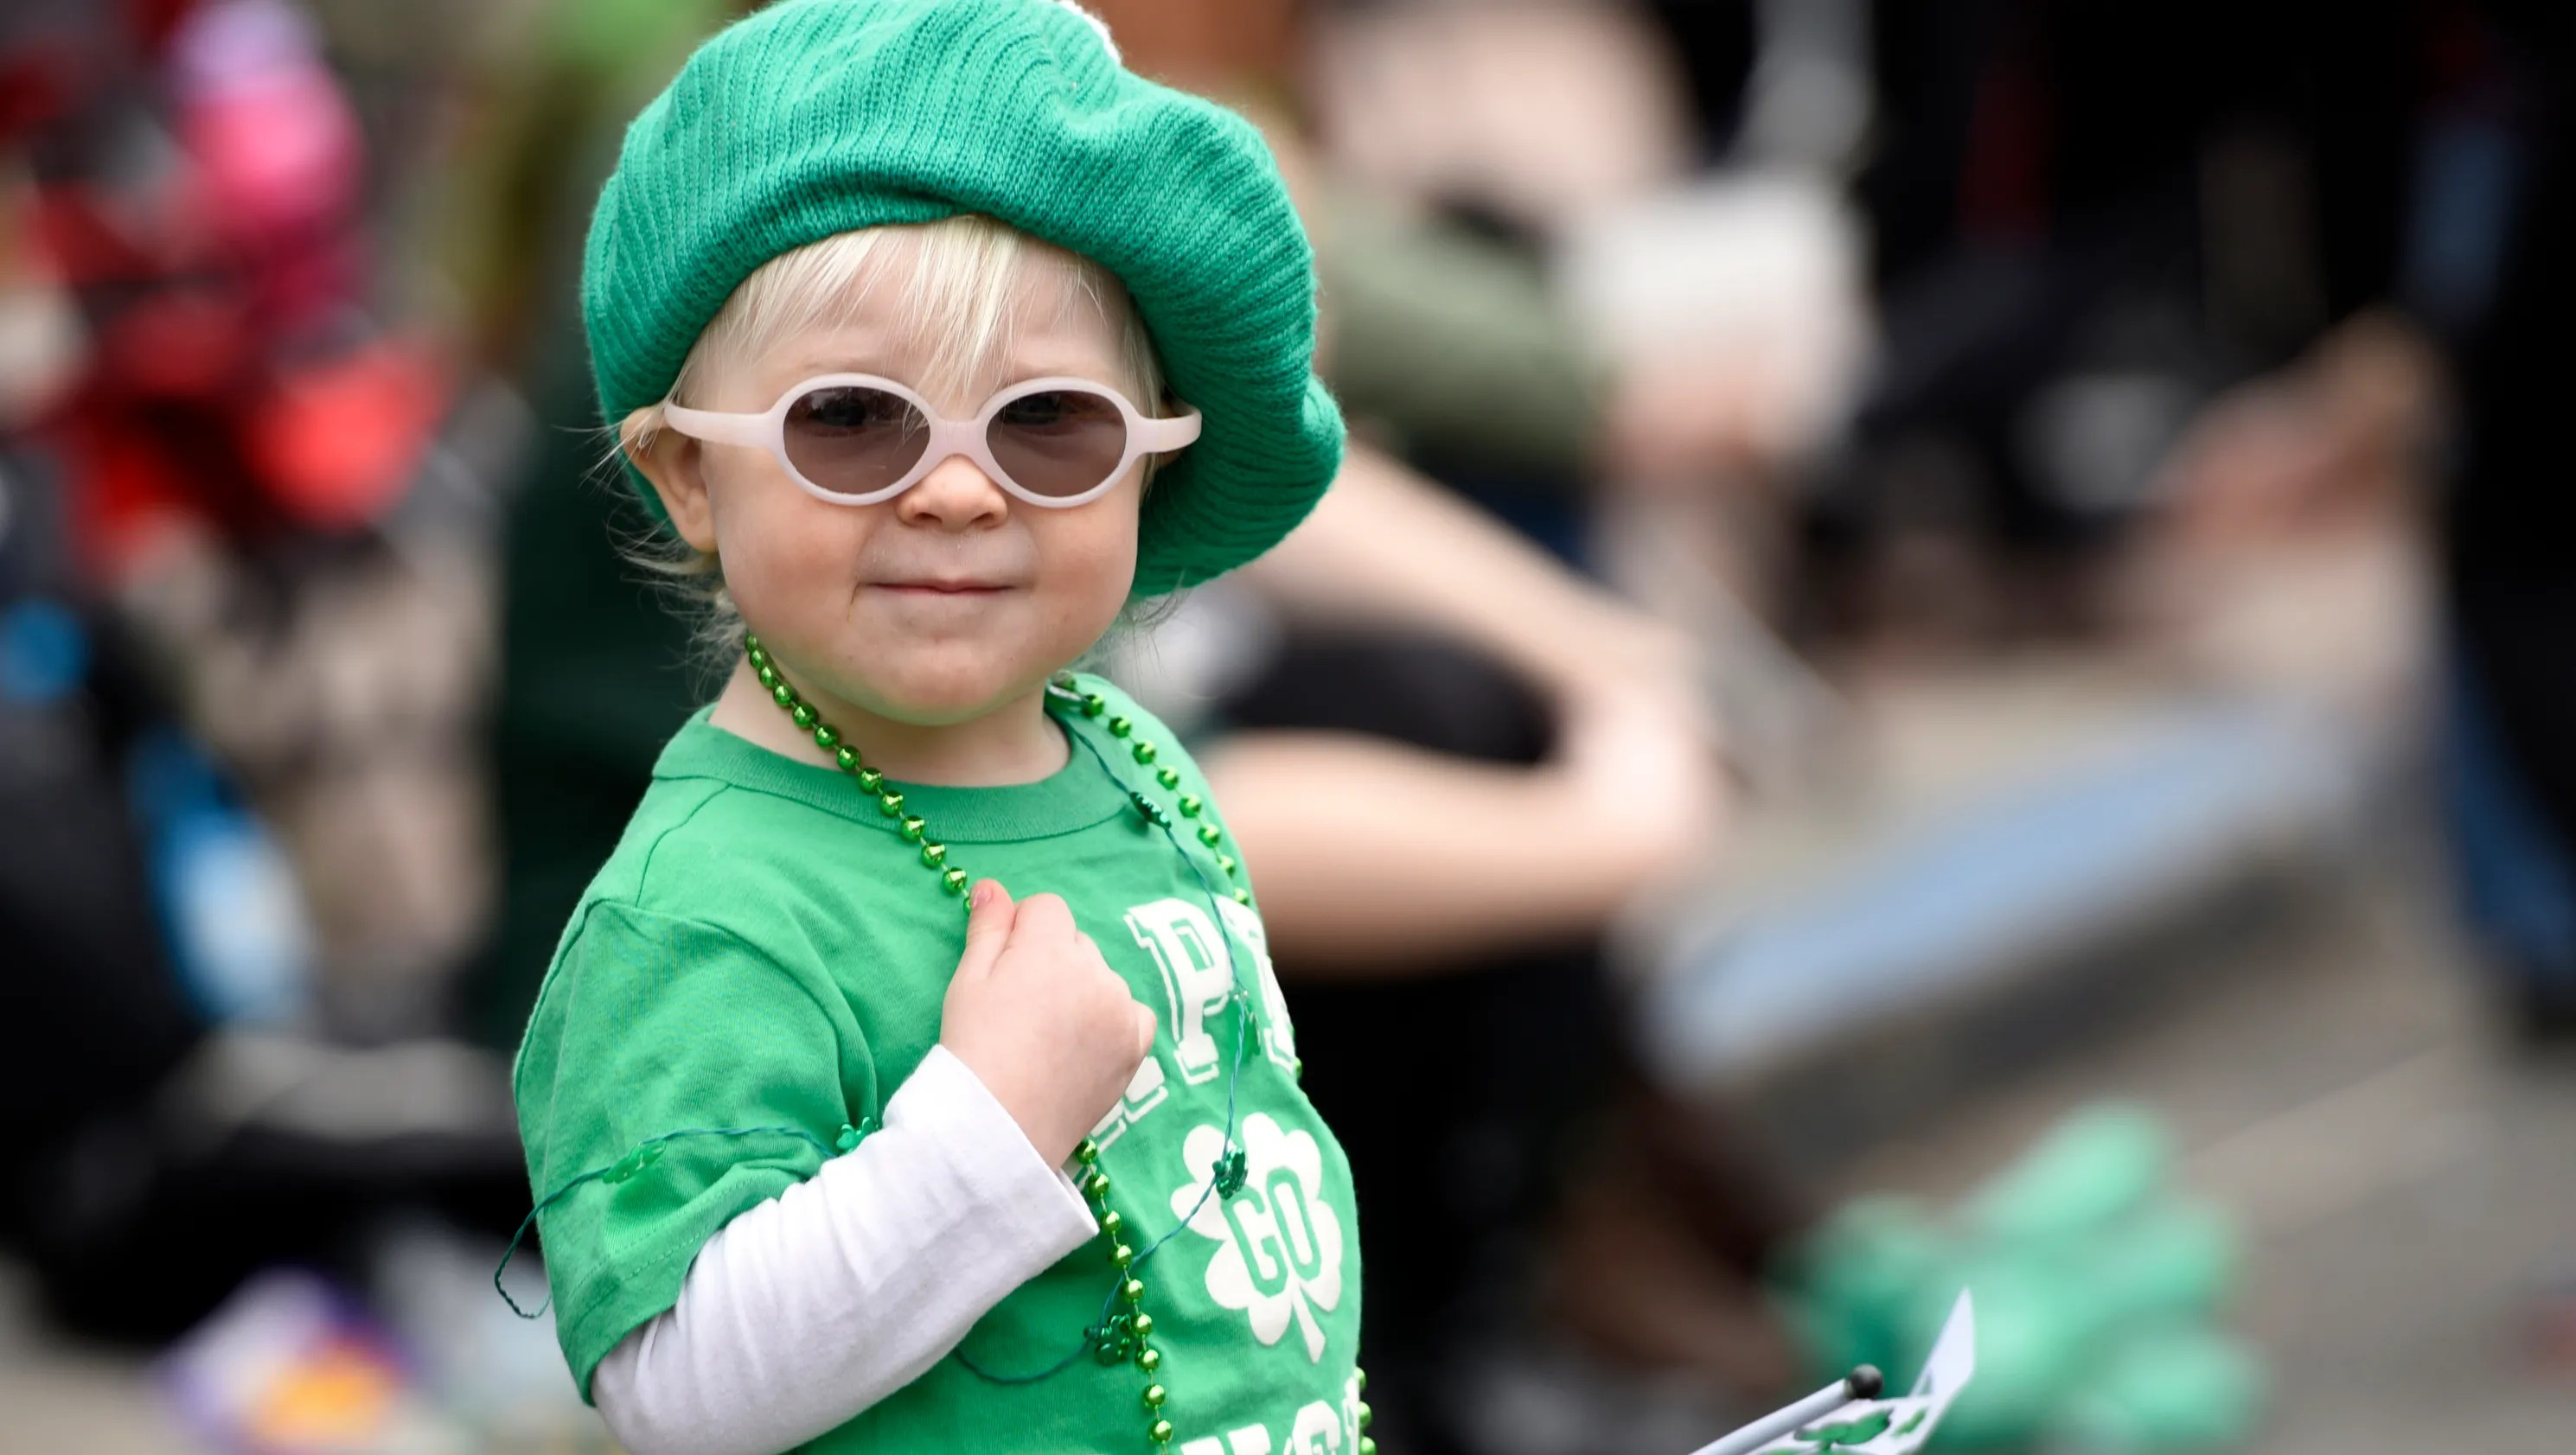 7 St Patricks Day traditions explained